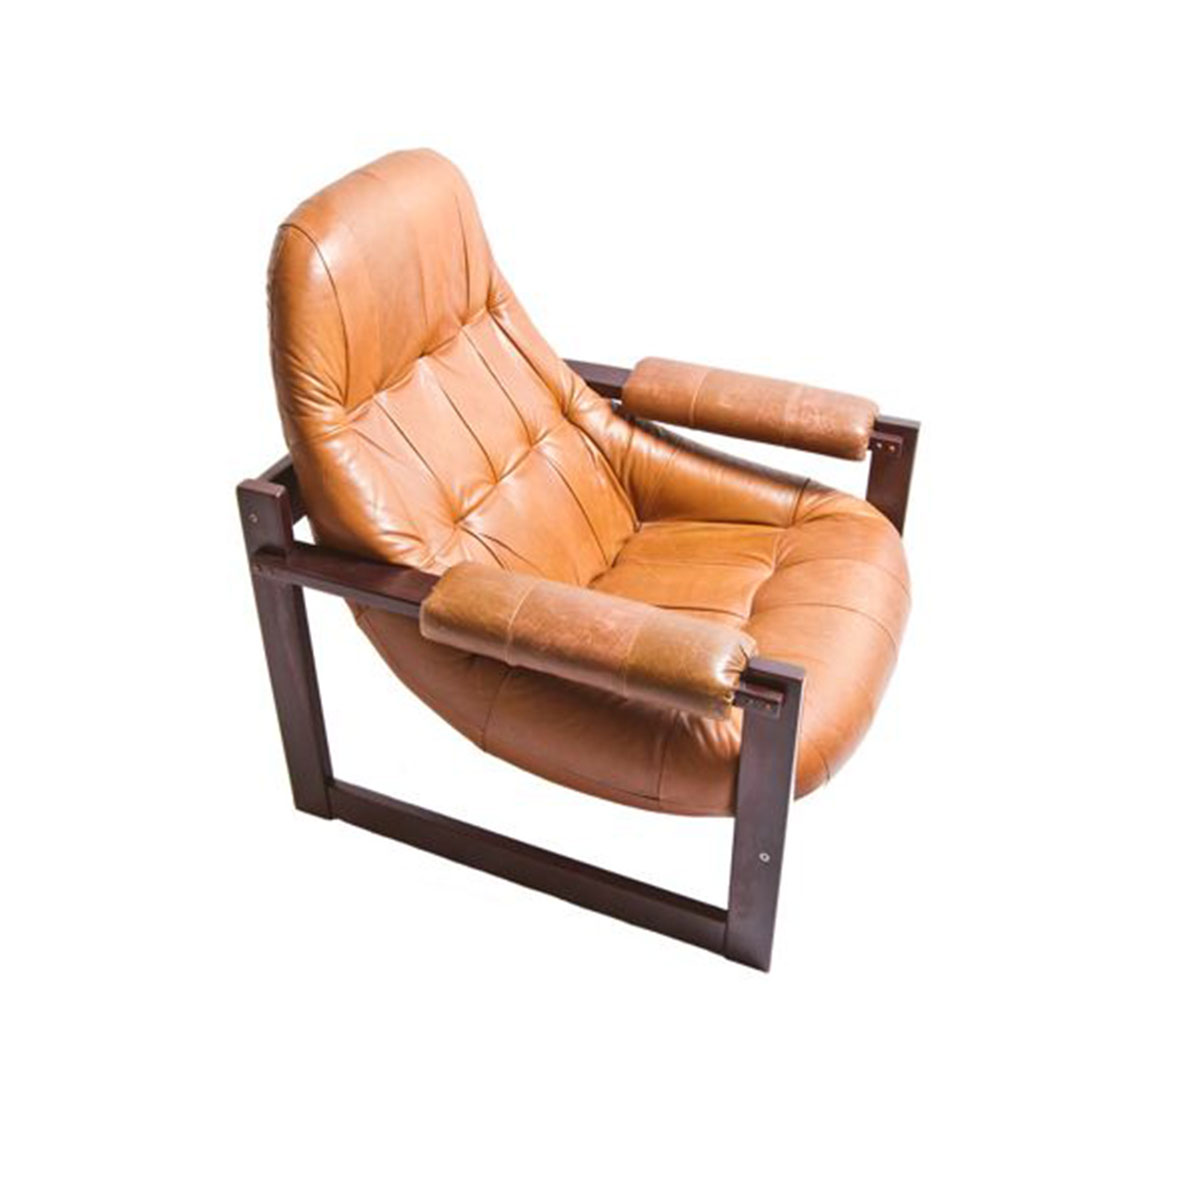 Percival Lafer Brazilian Leather Lounge Chair